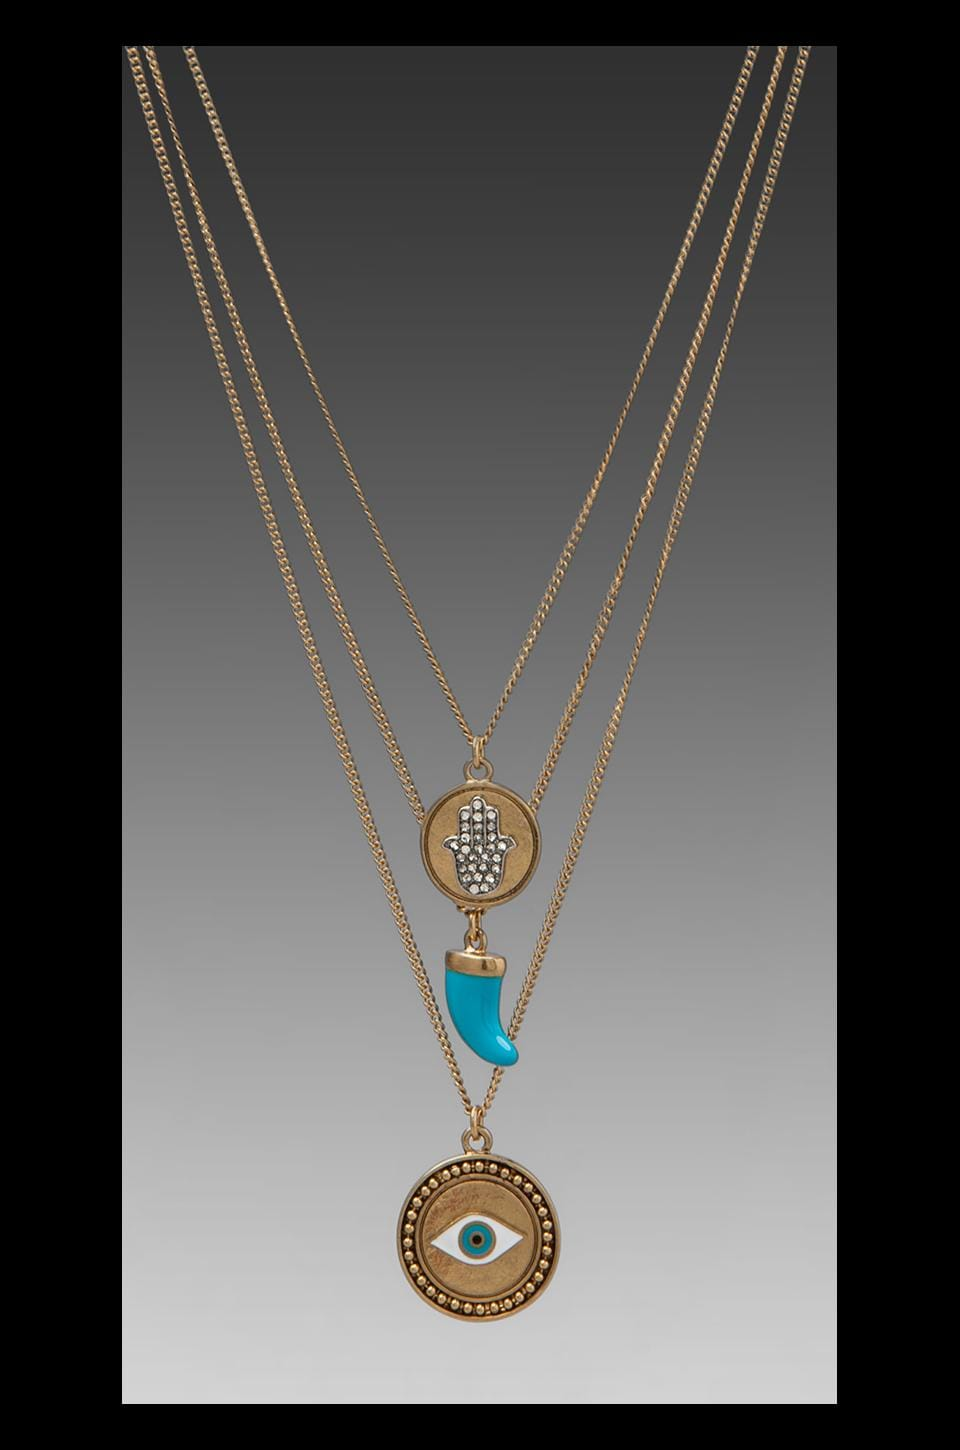 Juicy Couture Triple Chain Disc Necklace in Turquoise